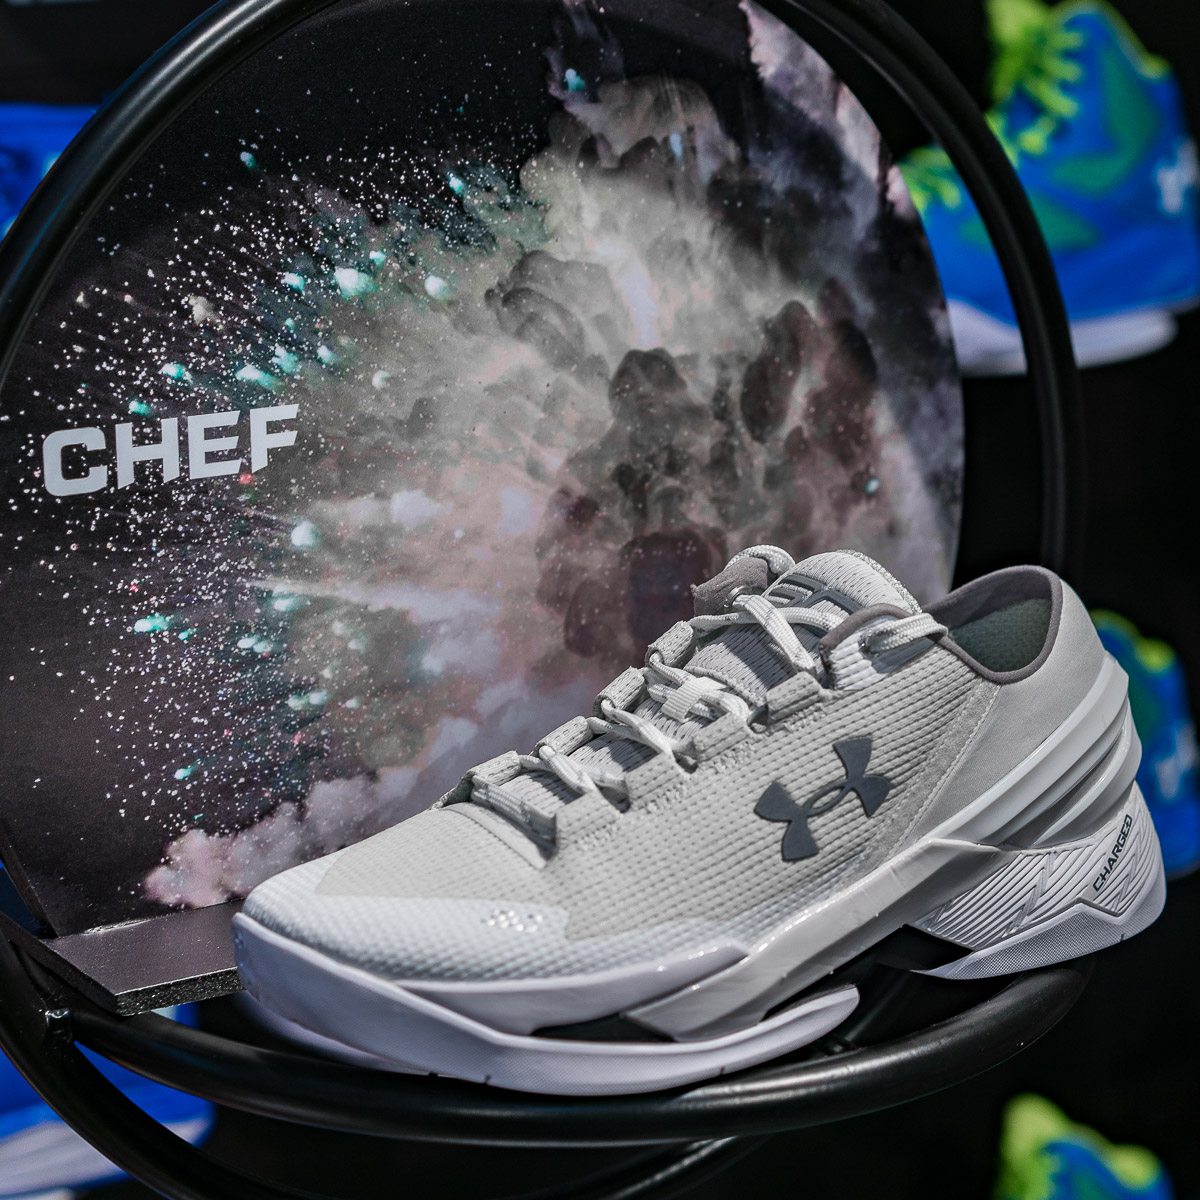 cheapest curry 2 chef low 74a89 a3a1c cd84a6582e0